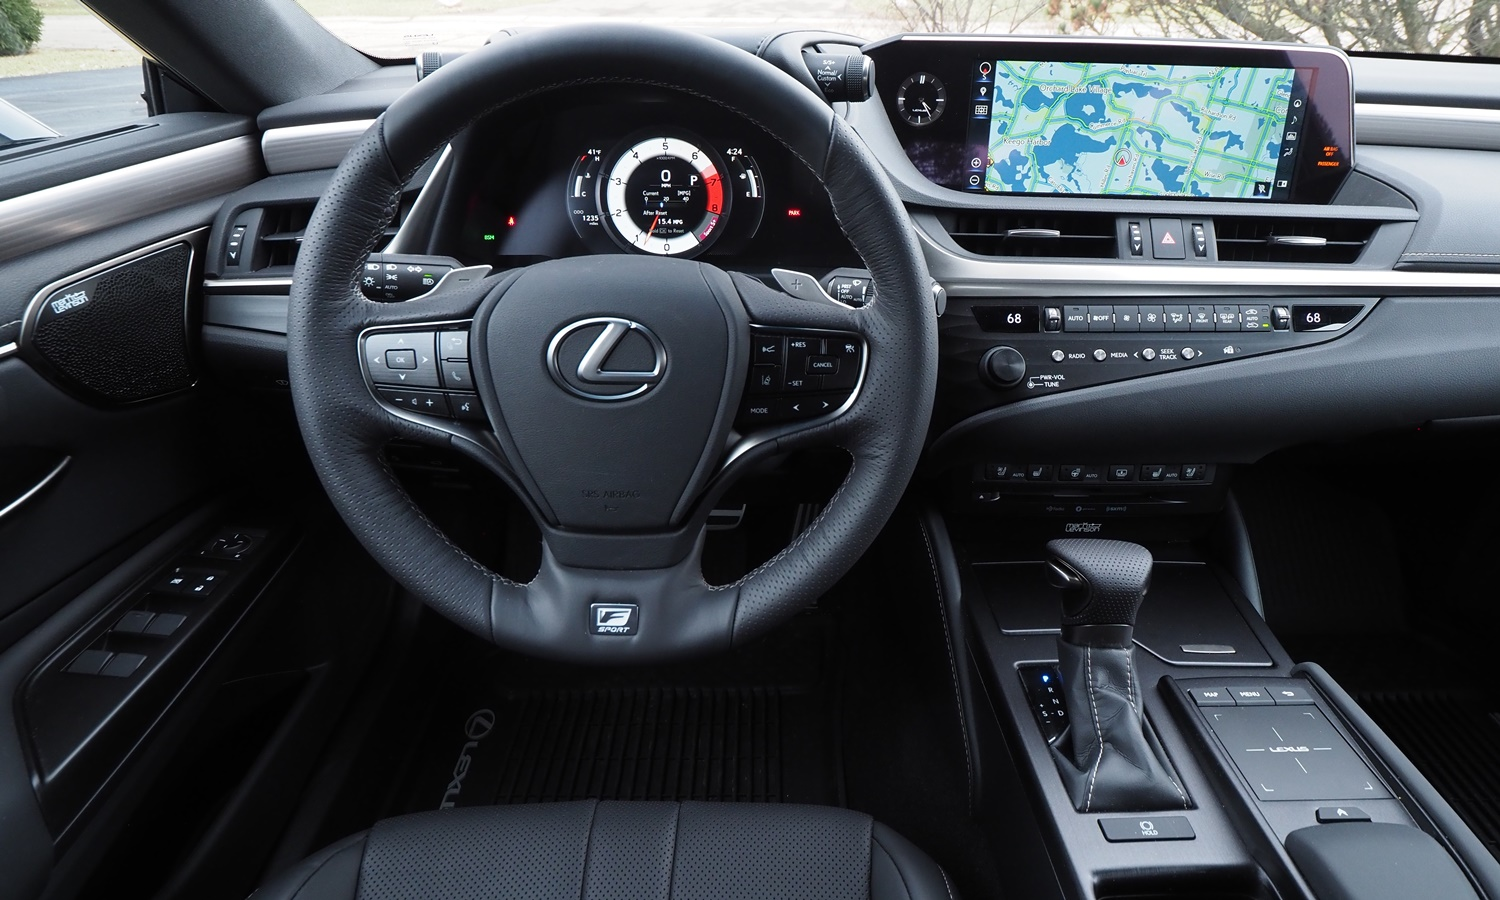 ES Reviews: Lexus ES 350 F Sport instrument panel